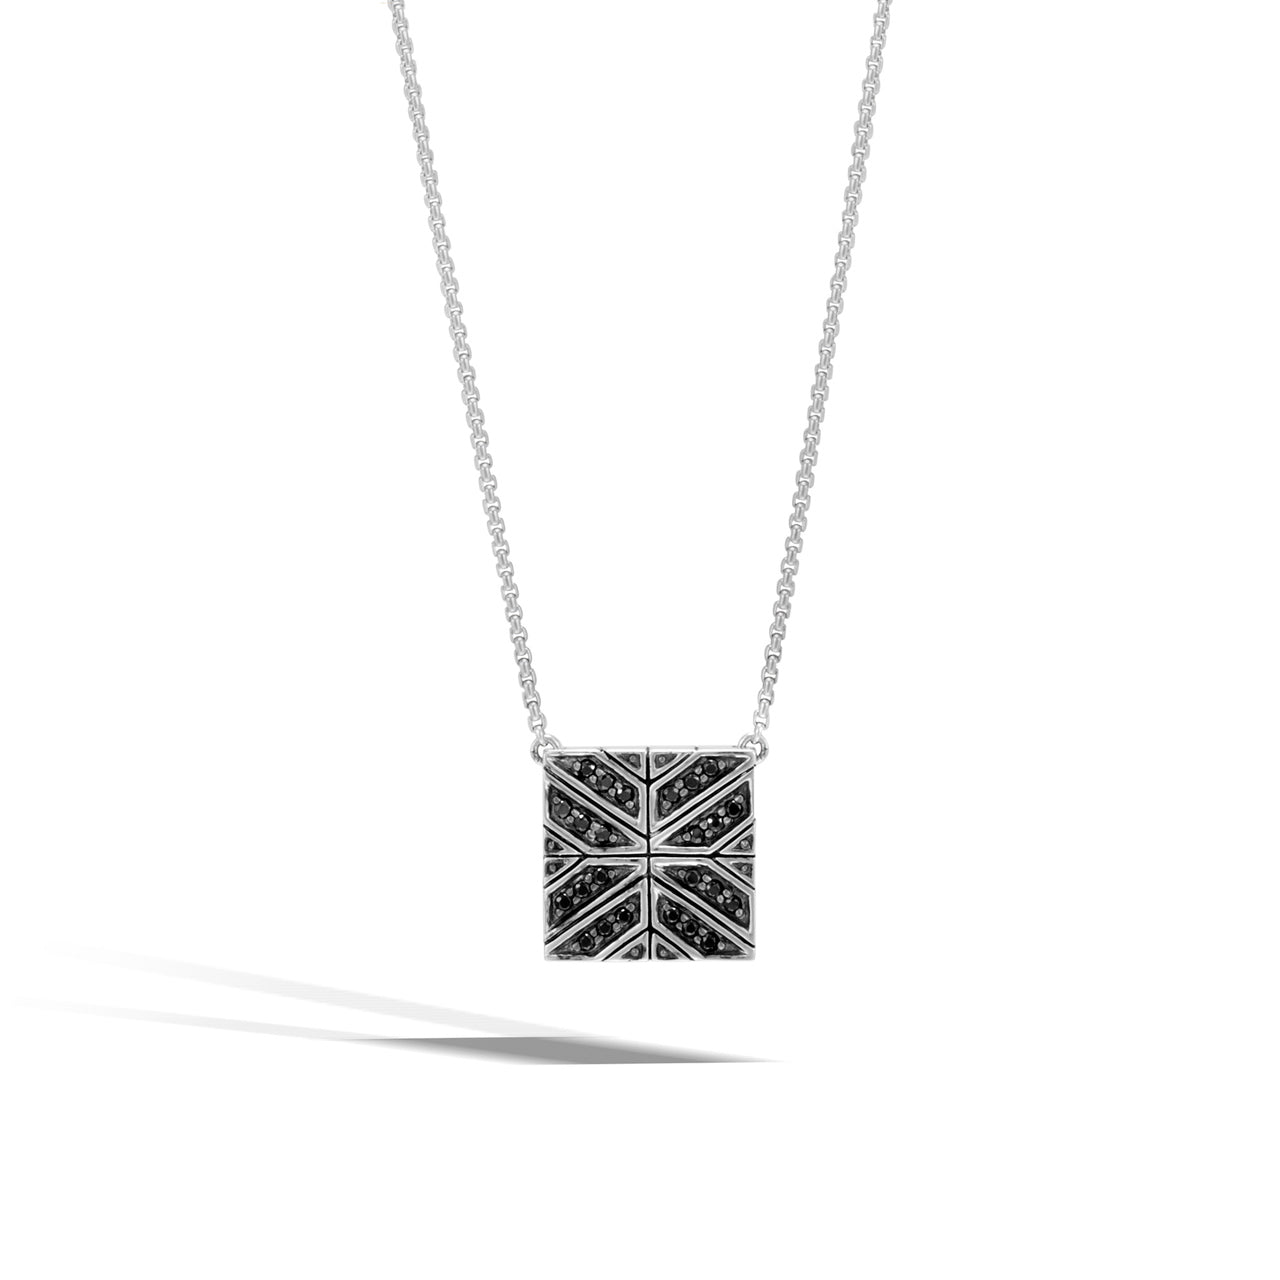 John Hardy Modern Chain Sterling Silver and Black Sapphire Pendant Necklace